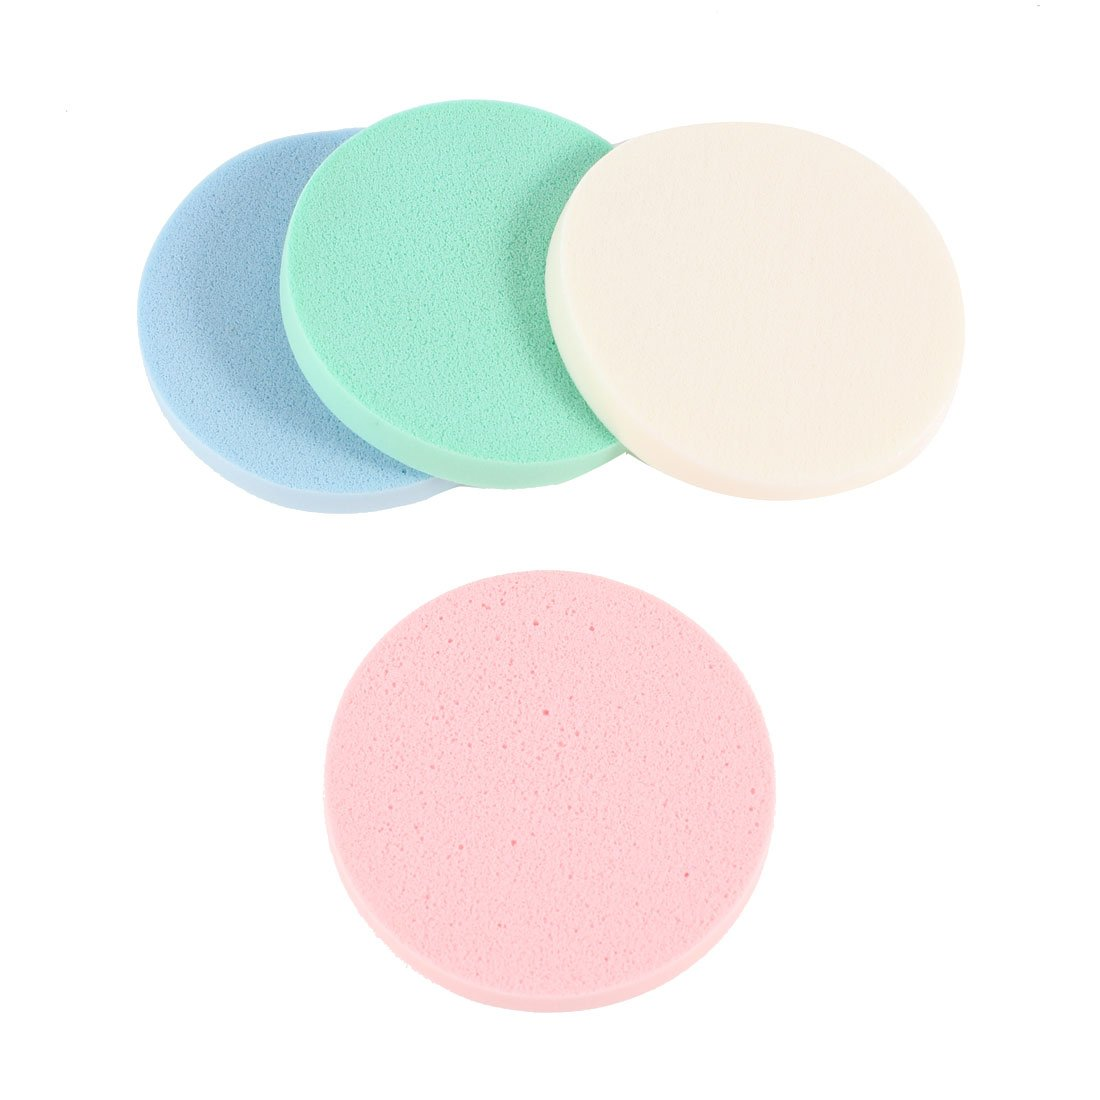 uxcell® 4 in 1 White Pink Blue Round Sponge Cosmetic Face Cleaning Powder Puffs a13081400ux0063